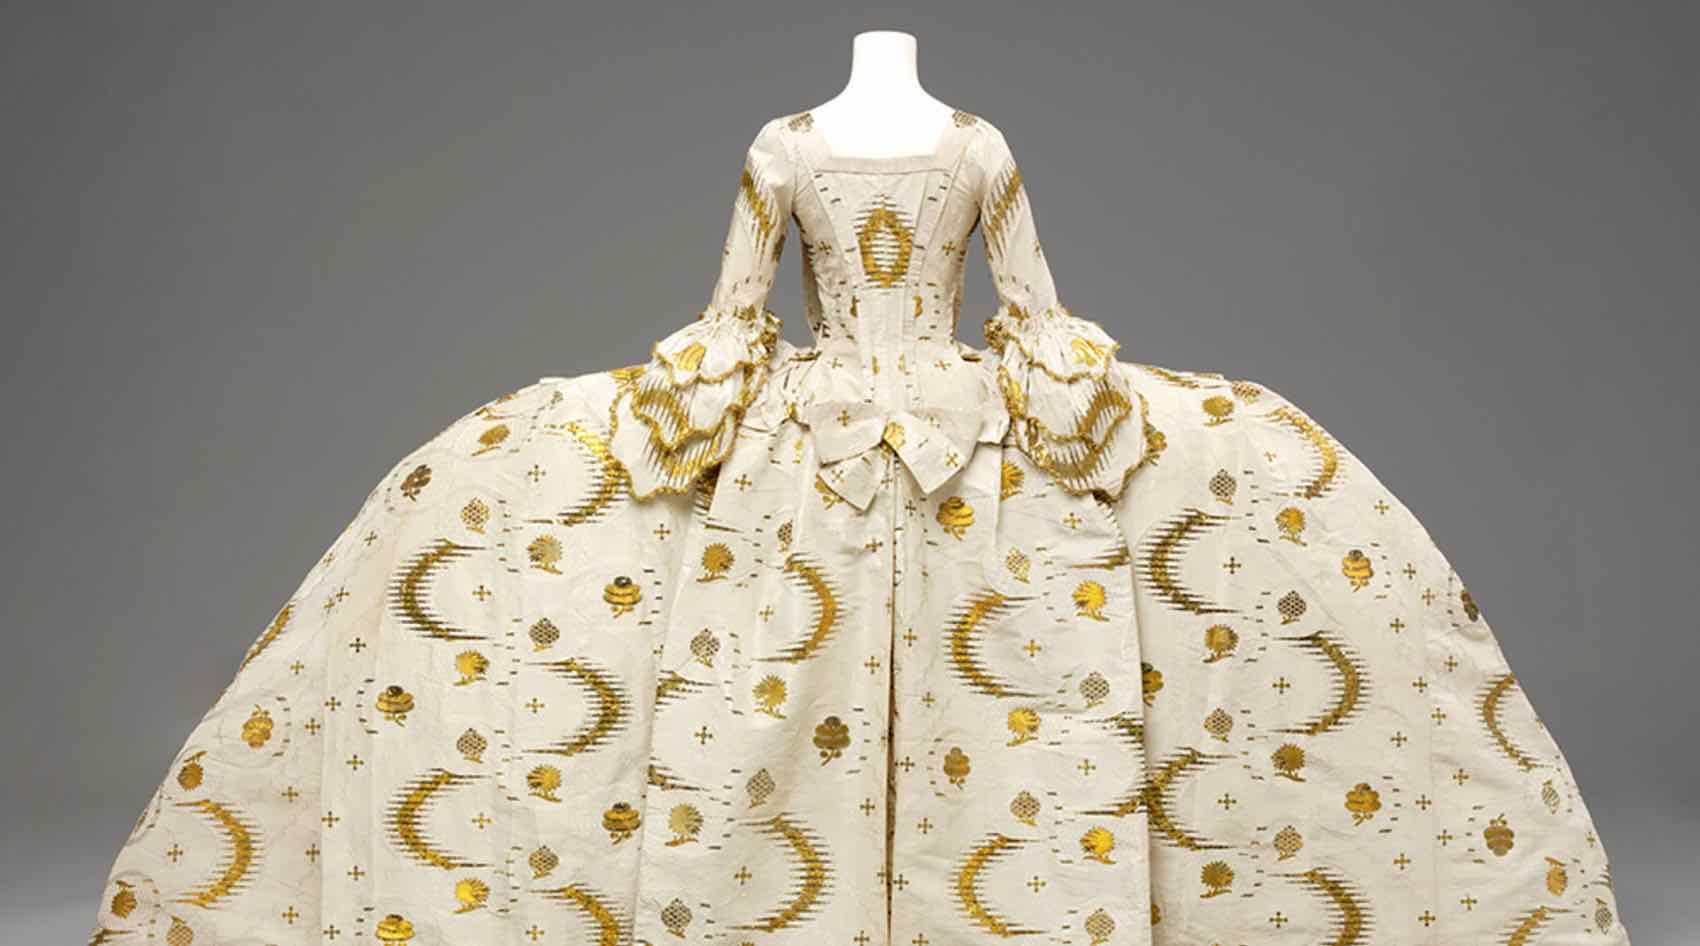 A mantua outfit from the 18th century on show at Victoria & AlbertMuseum in South Kensington